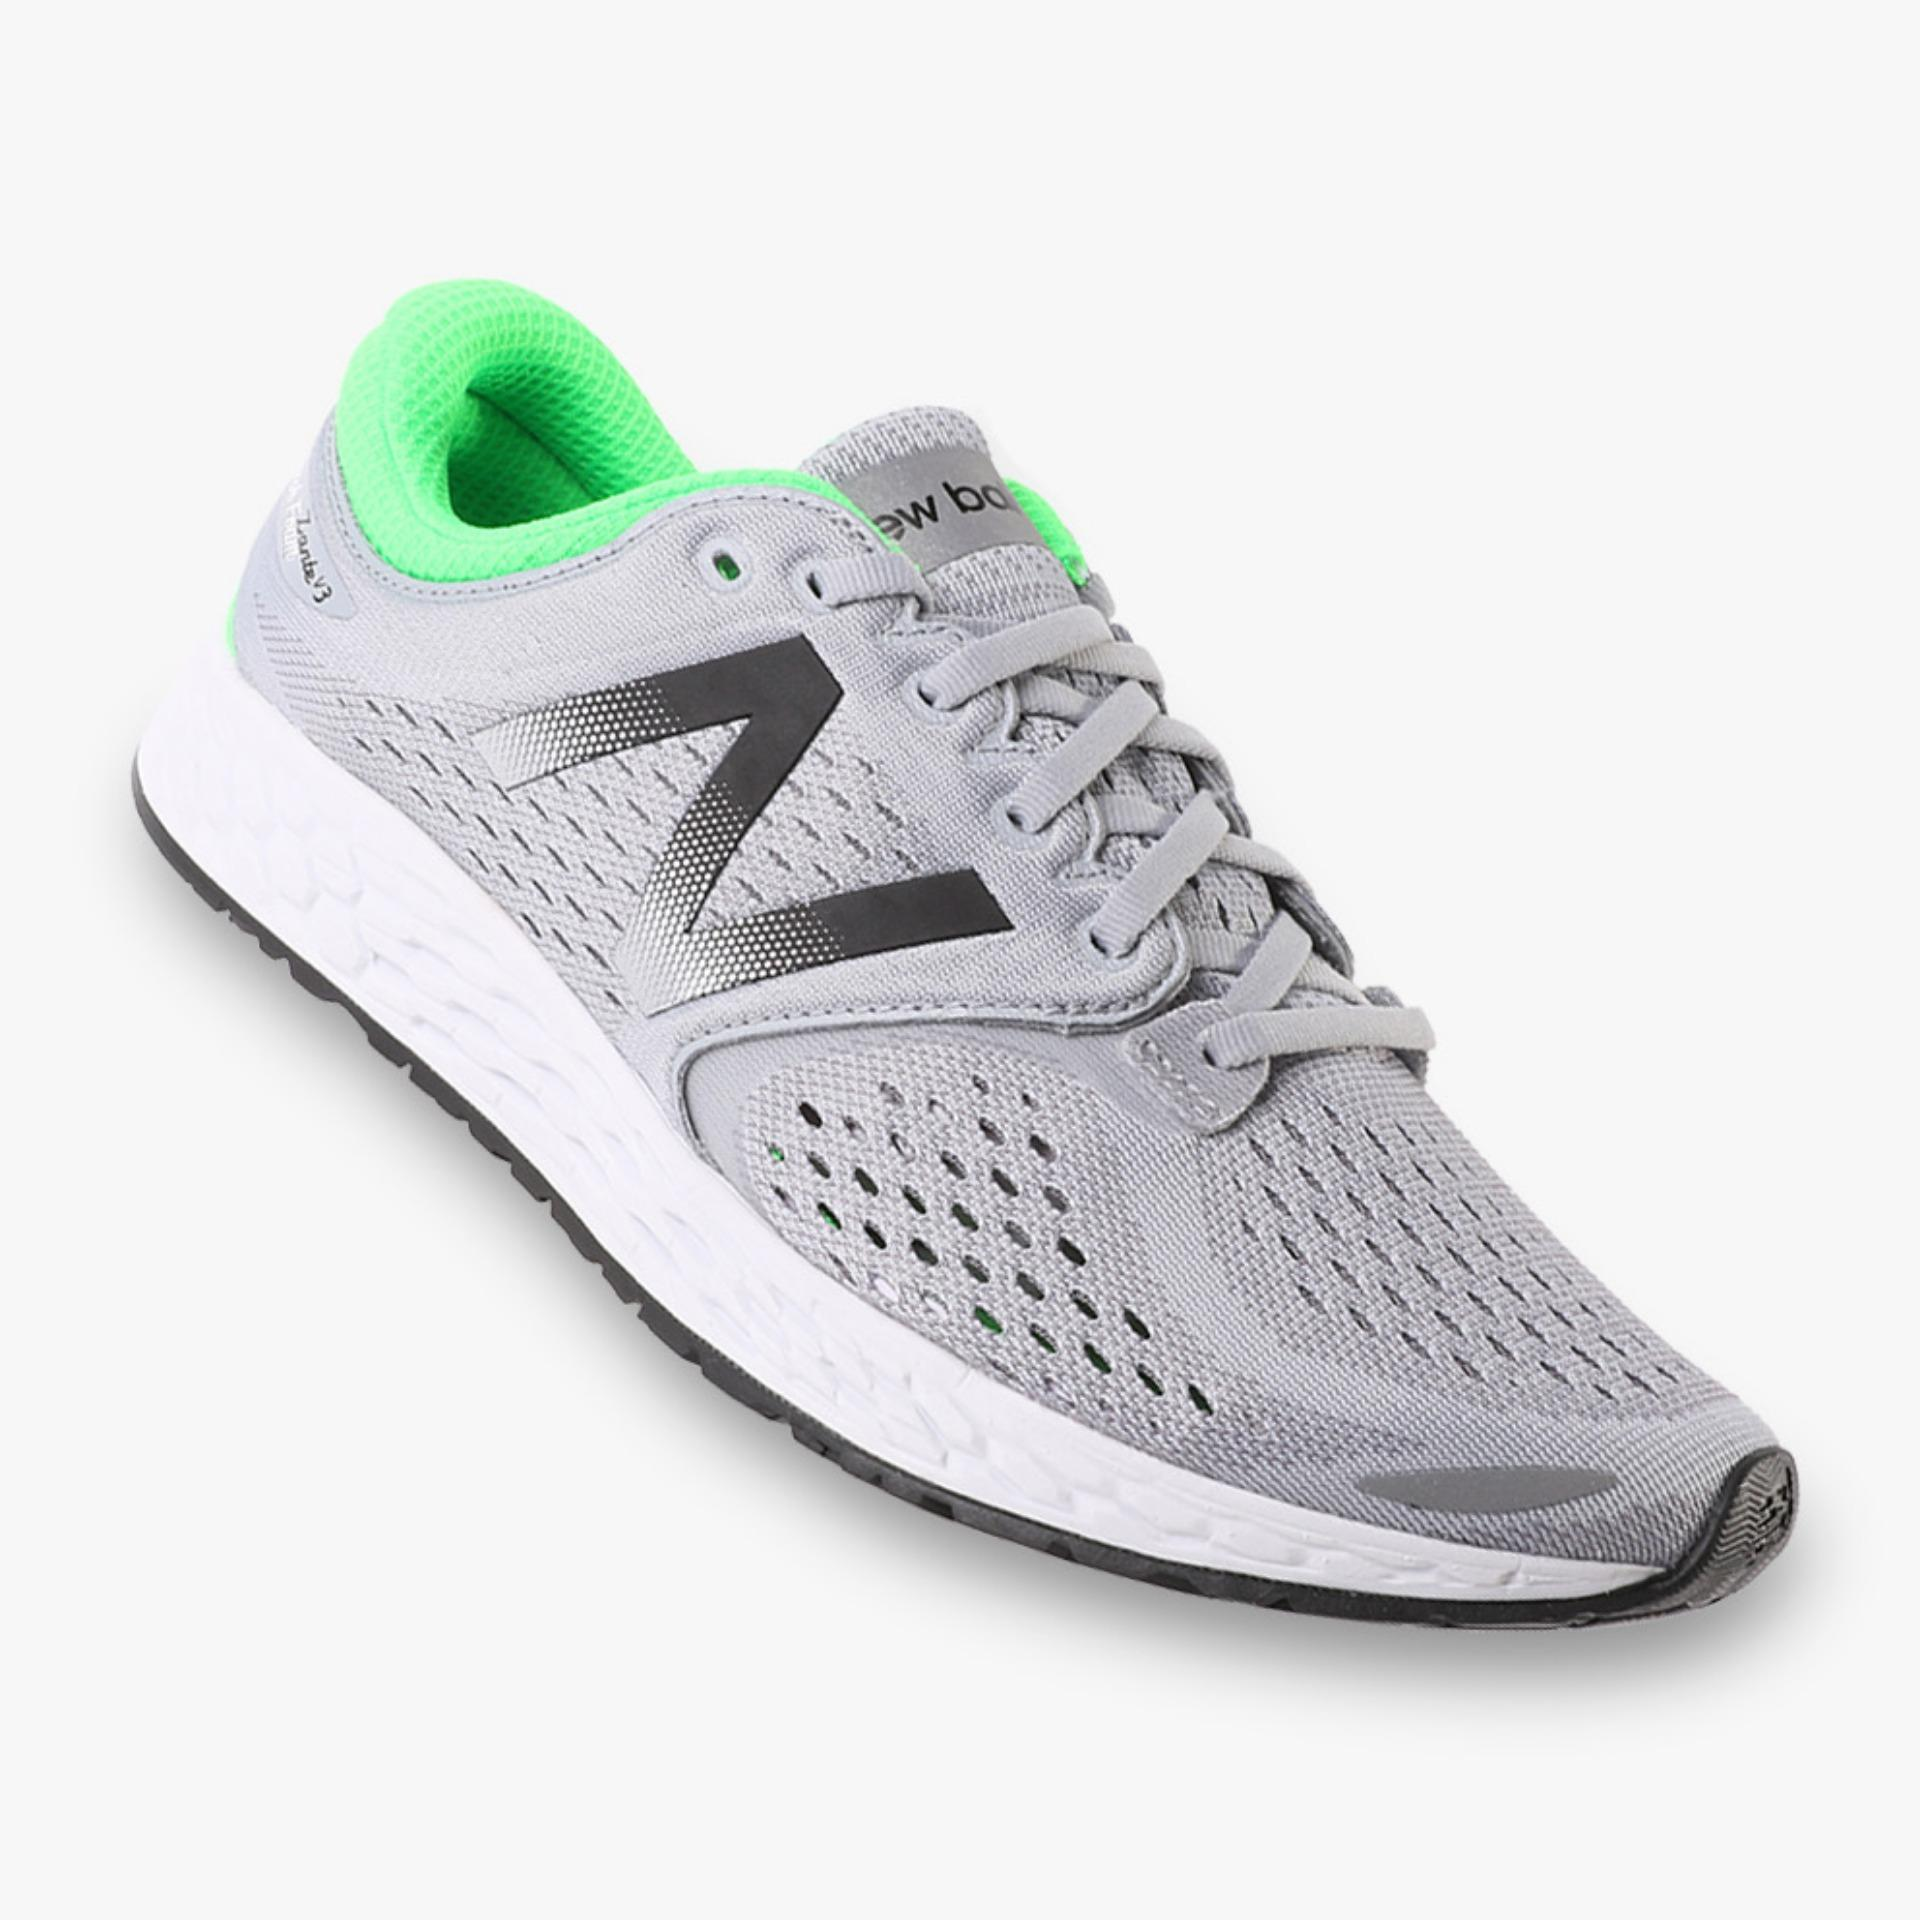 Review New Balance Fresh Foam Zante Breathe Pack Men S Running Shoes Abu Abu New Balance Di Indonesia